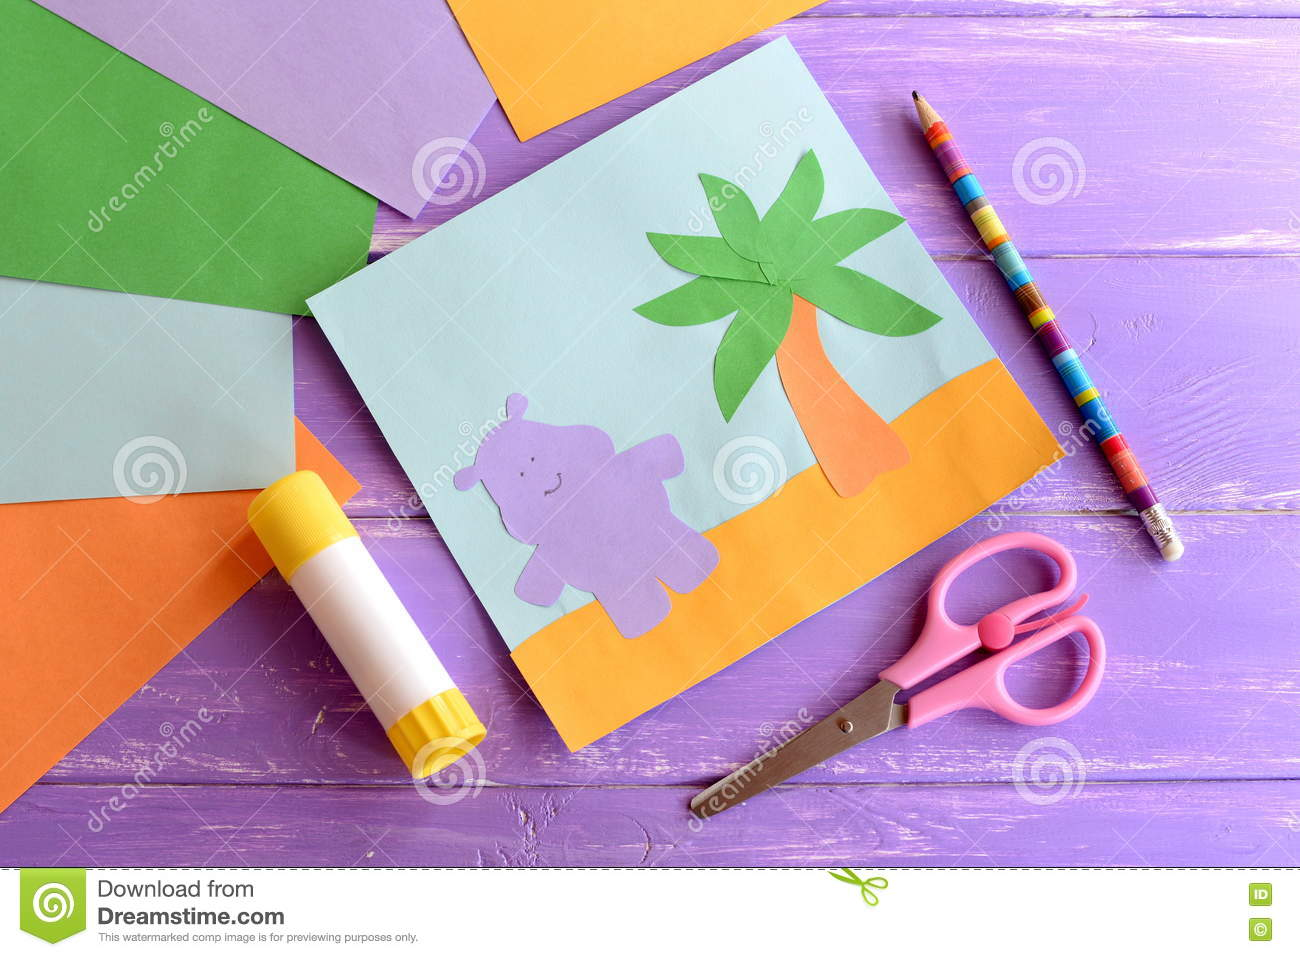 Summer Paper Card Scissors Glue Stick Colored Paper Sheets On